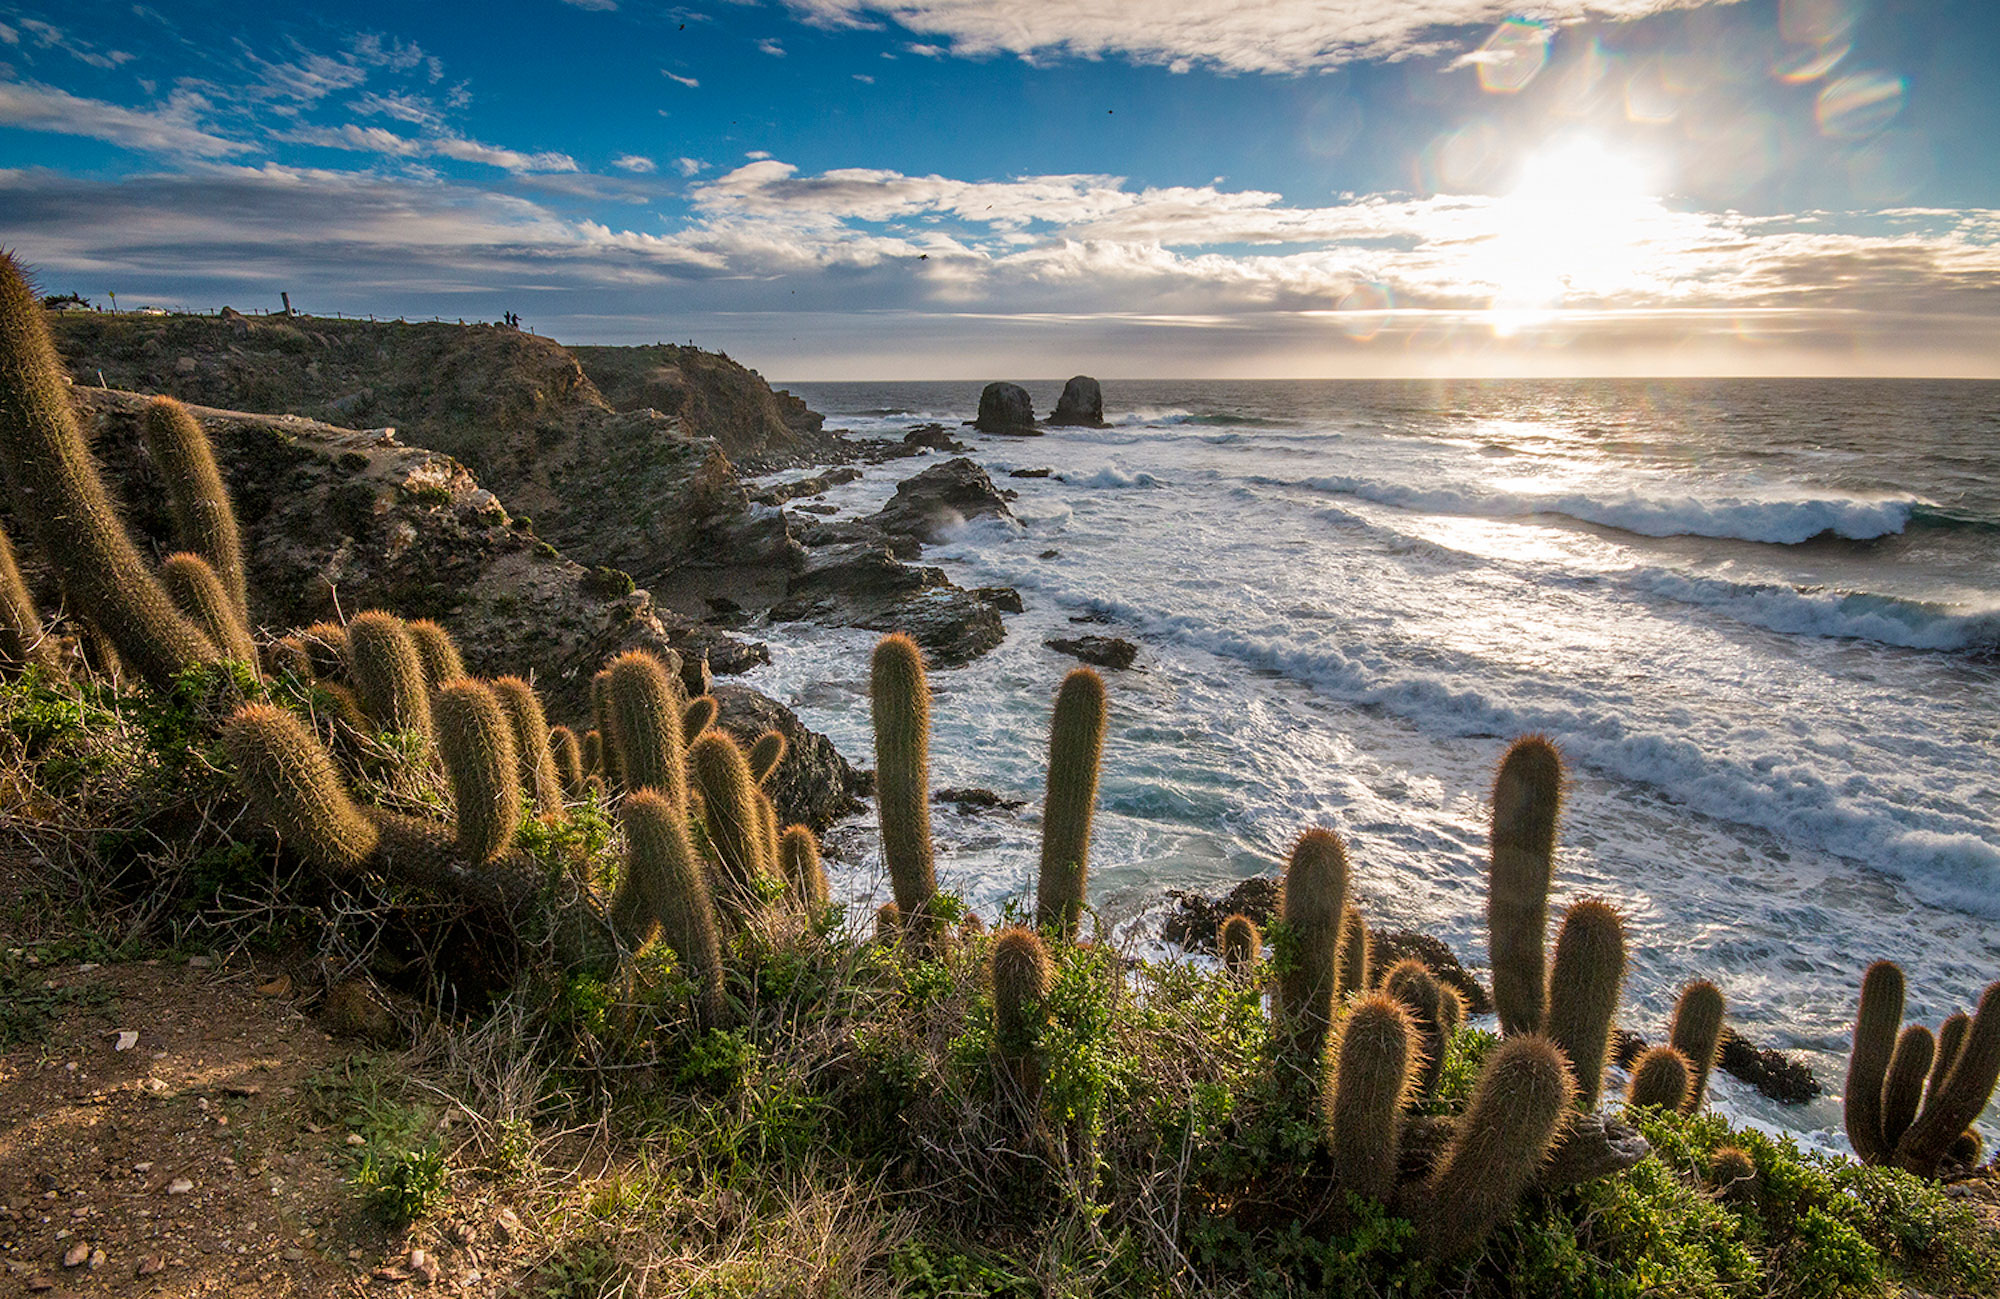 Natural surroundings at Punta de Lobos.